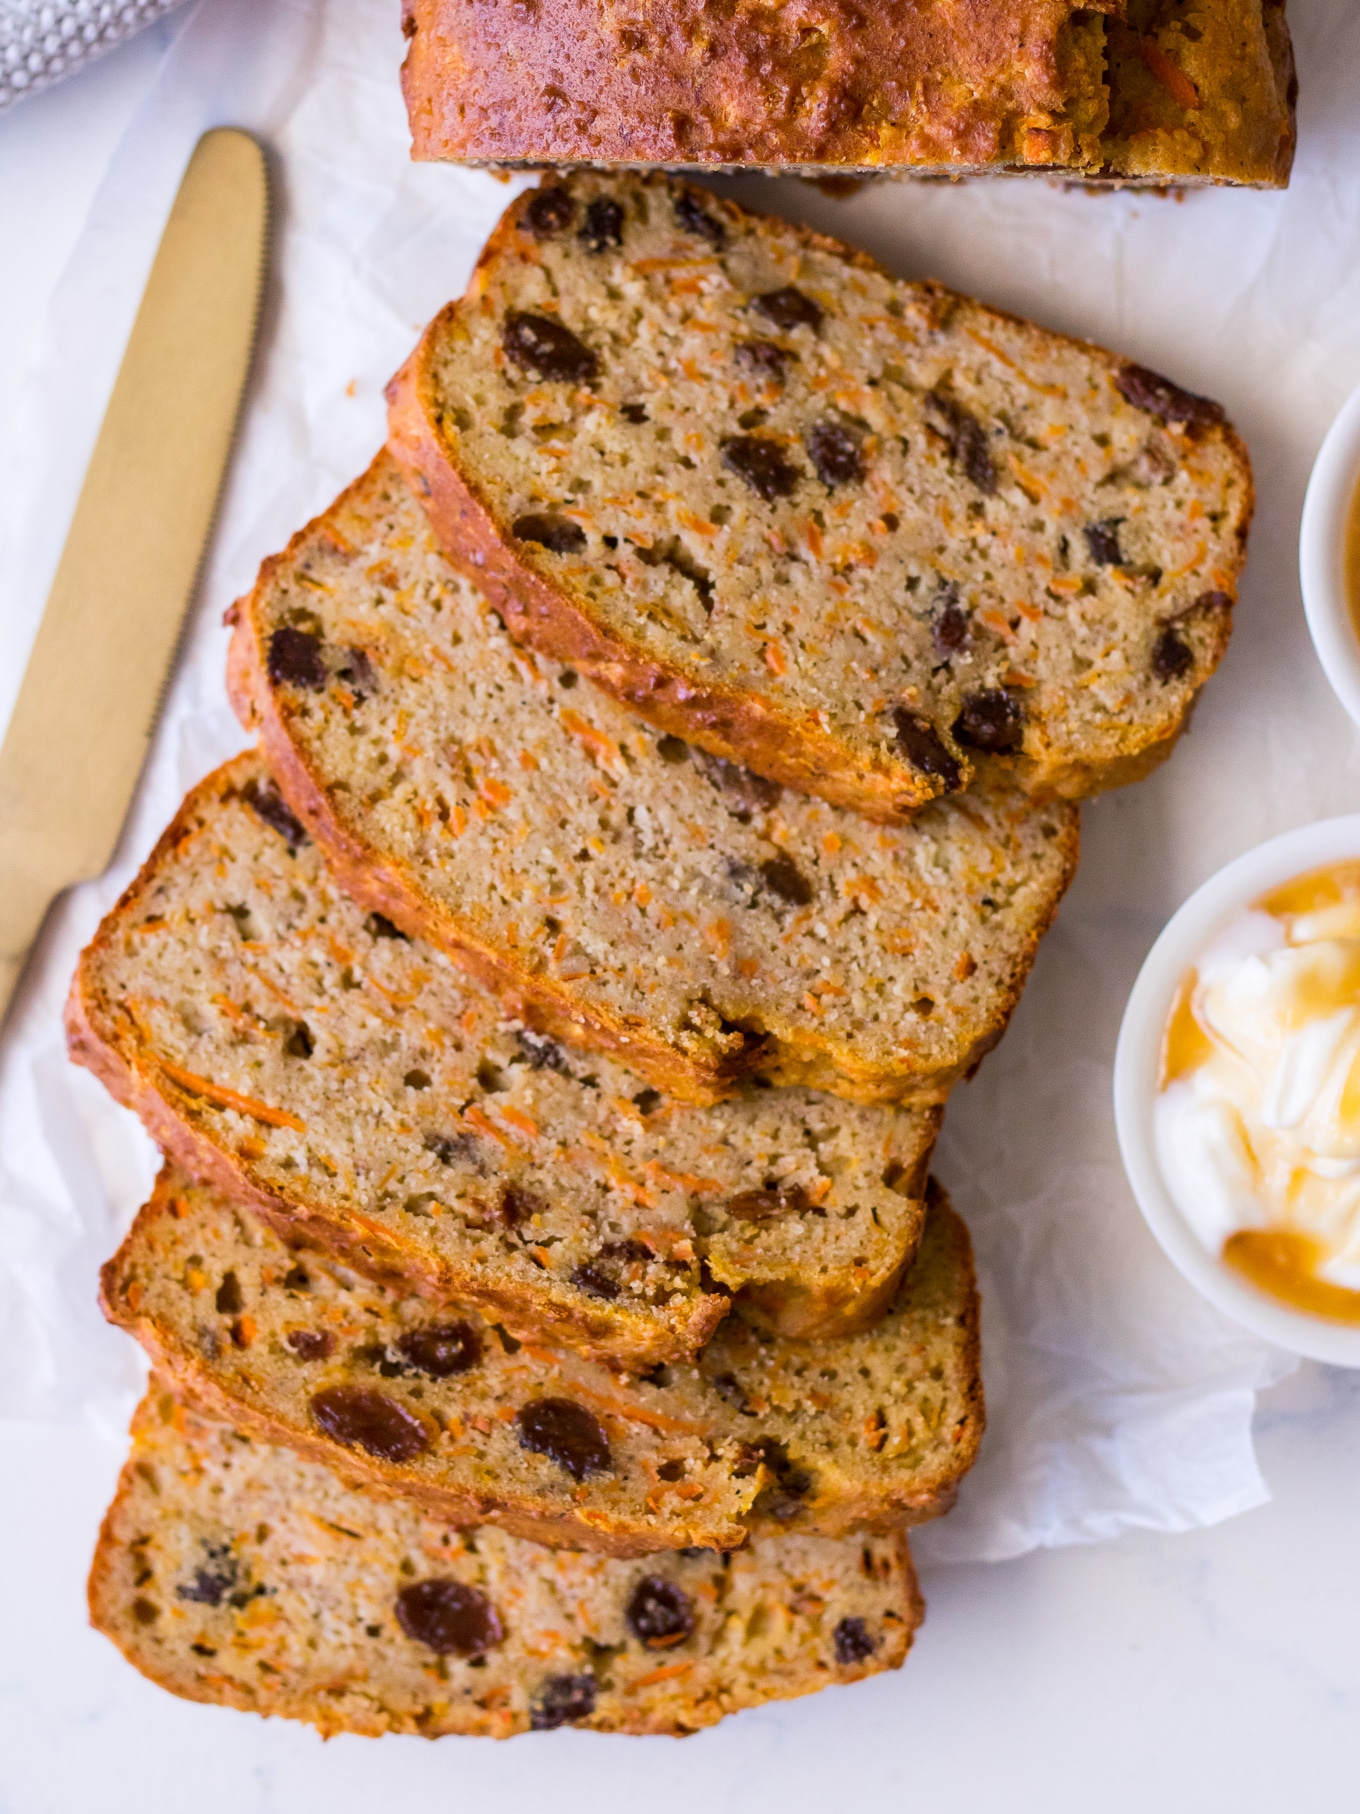 Slices of banana, carrot and sultana loaf cake against a white background